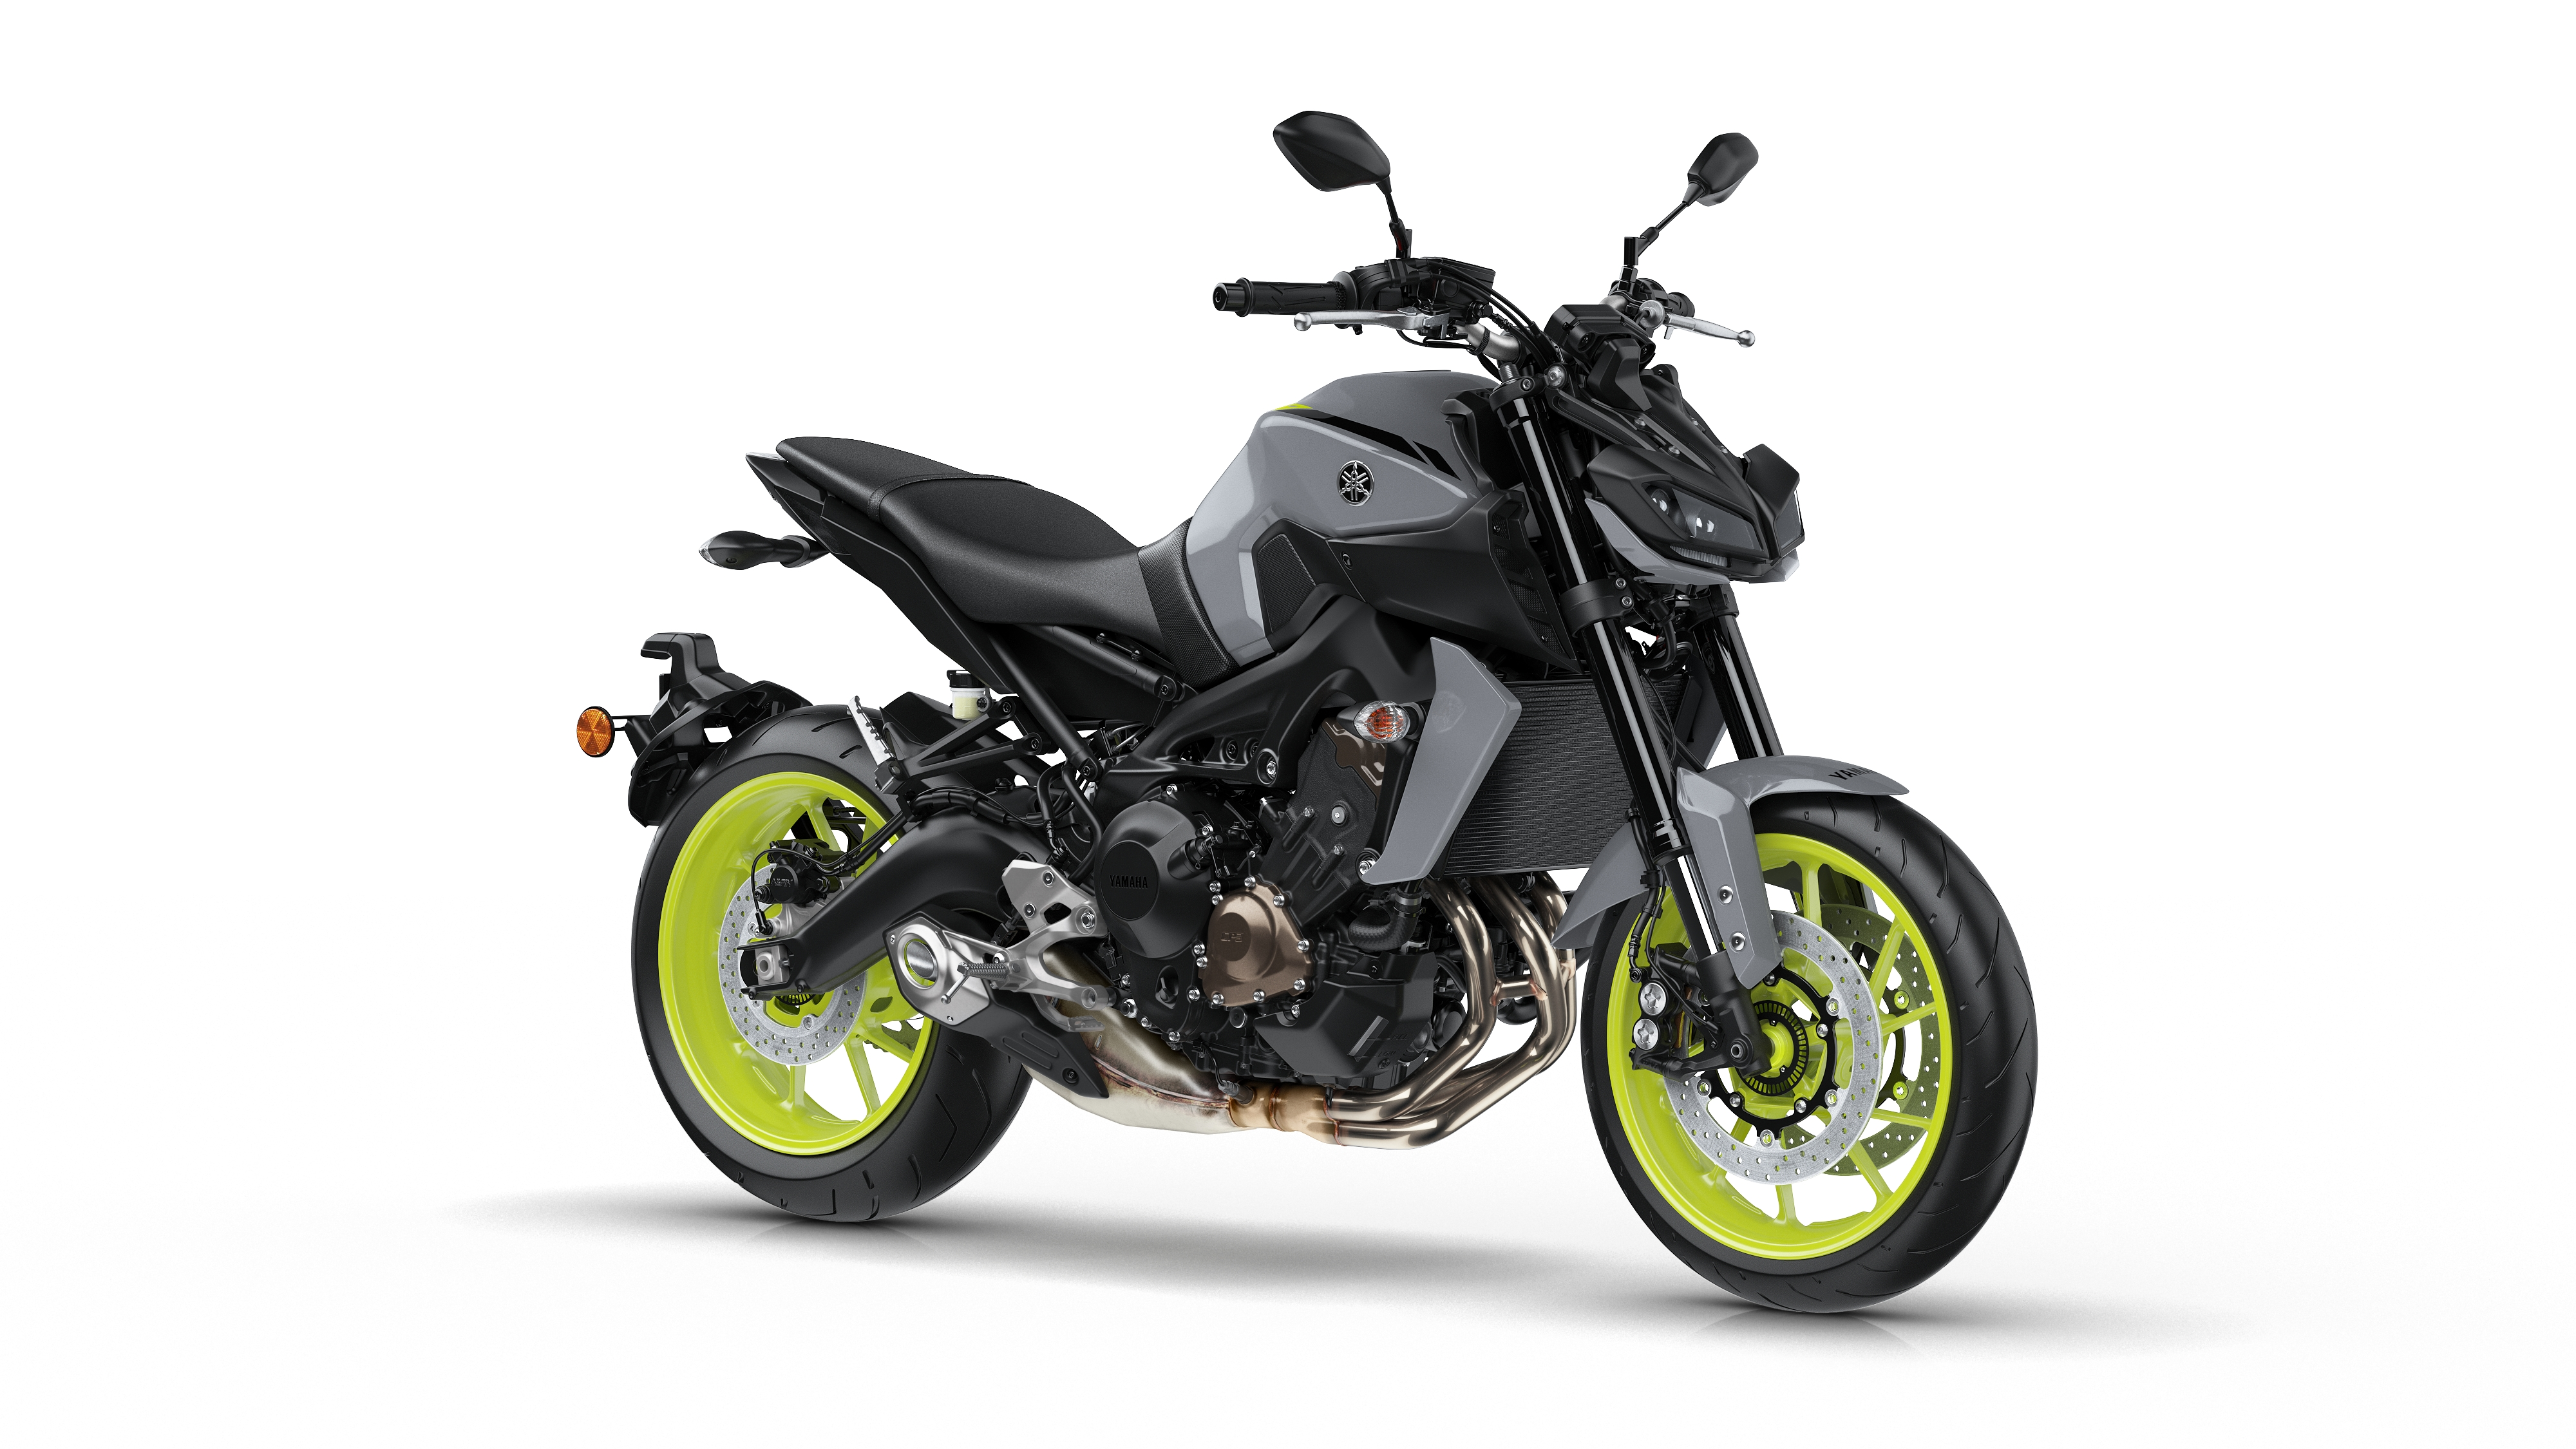 Yamaha MT-09 gets MT-10 makeover and upgrades for 2017